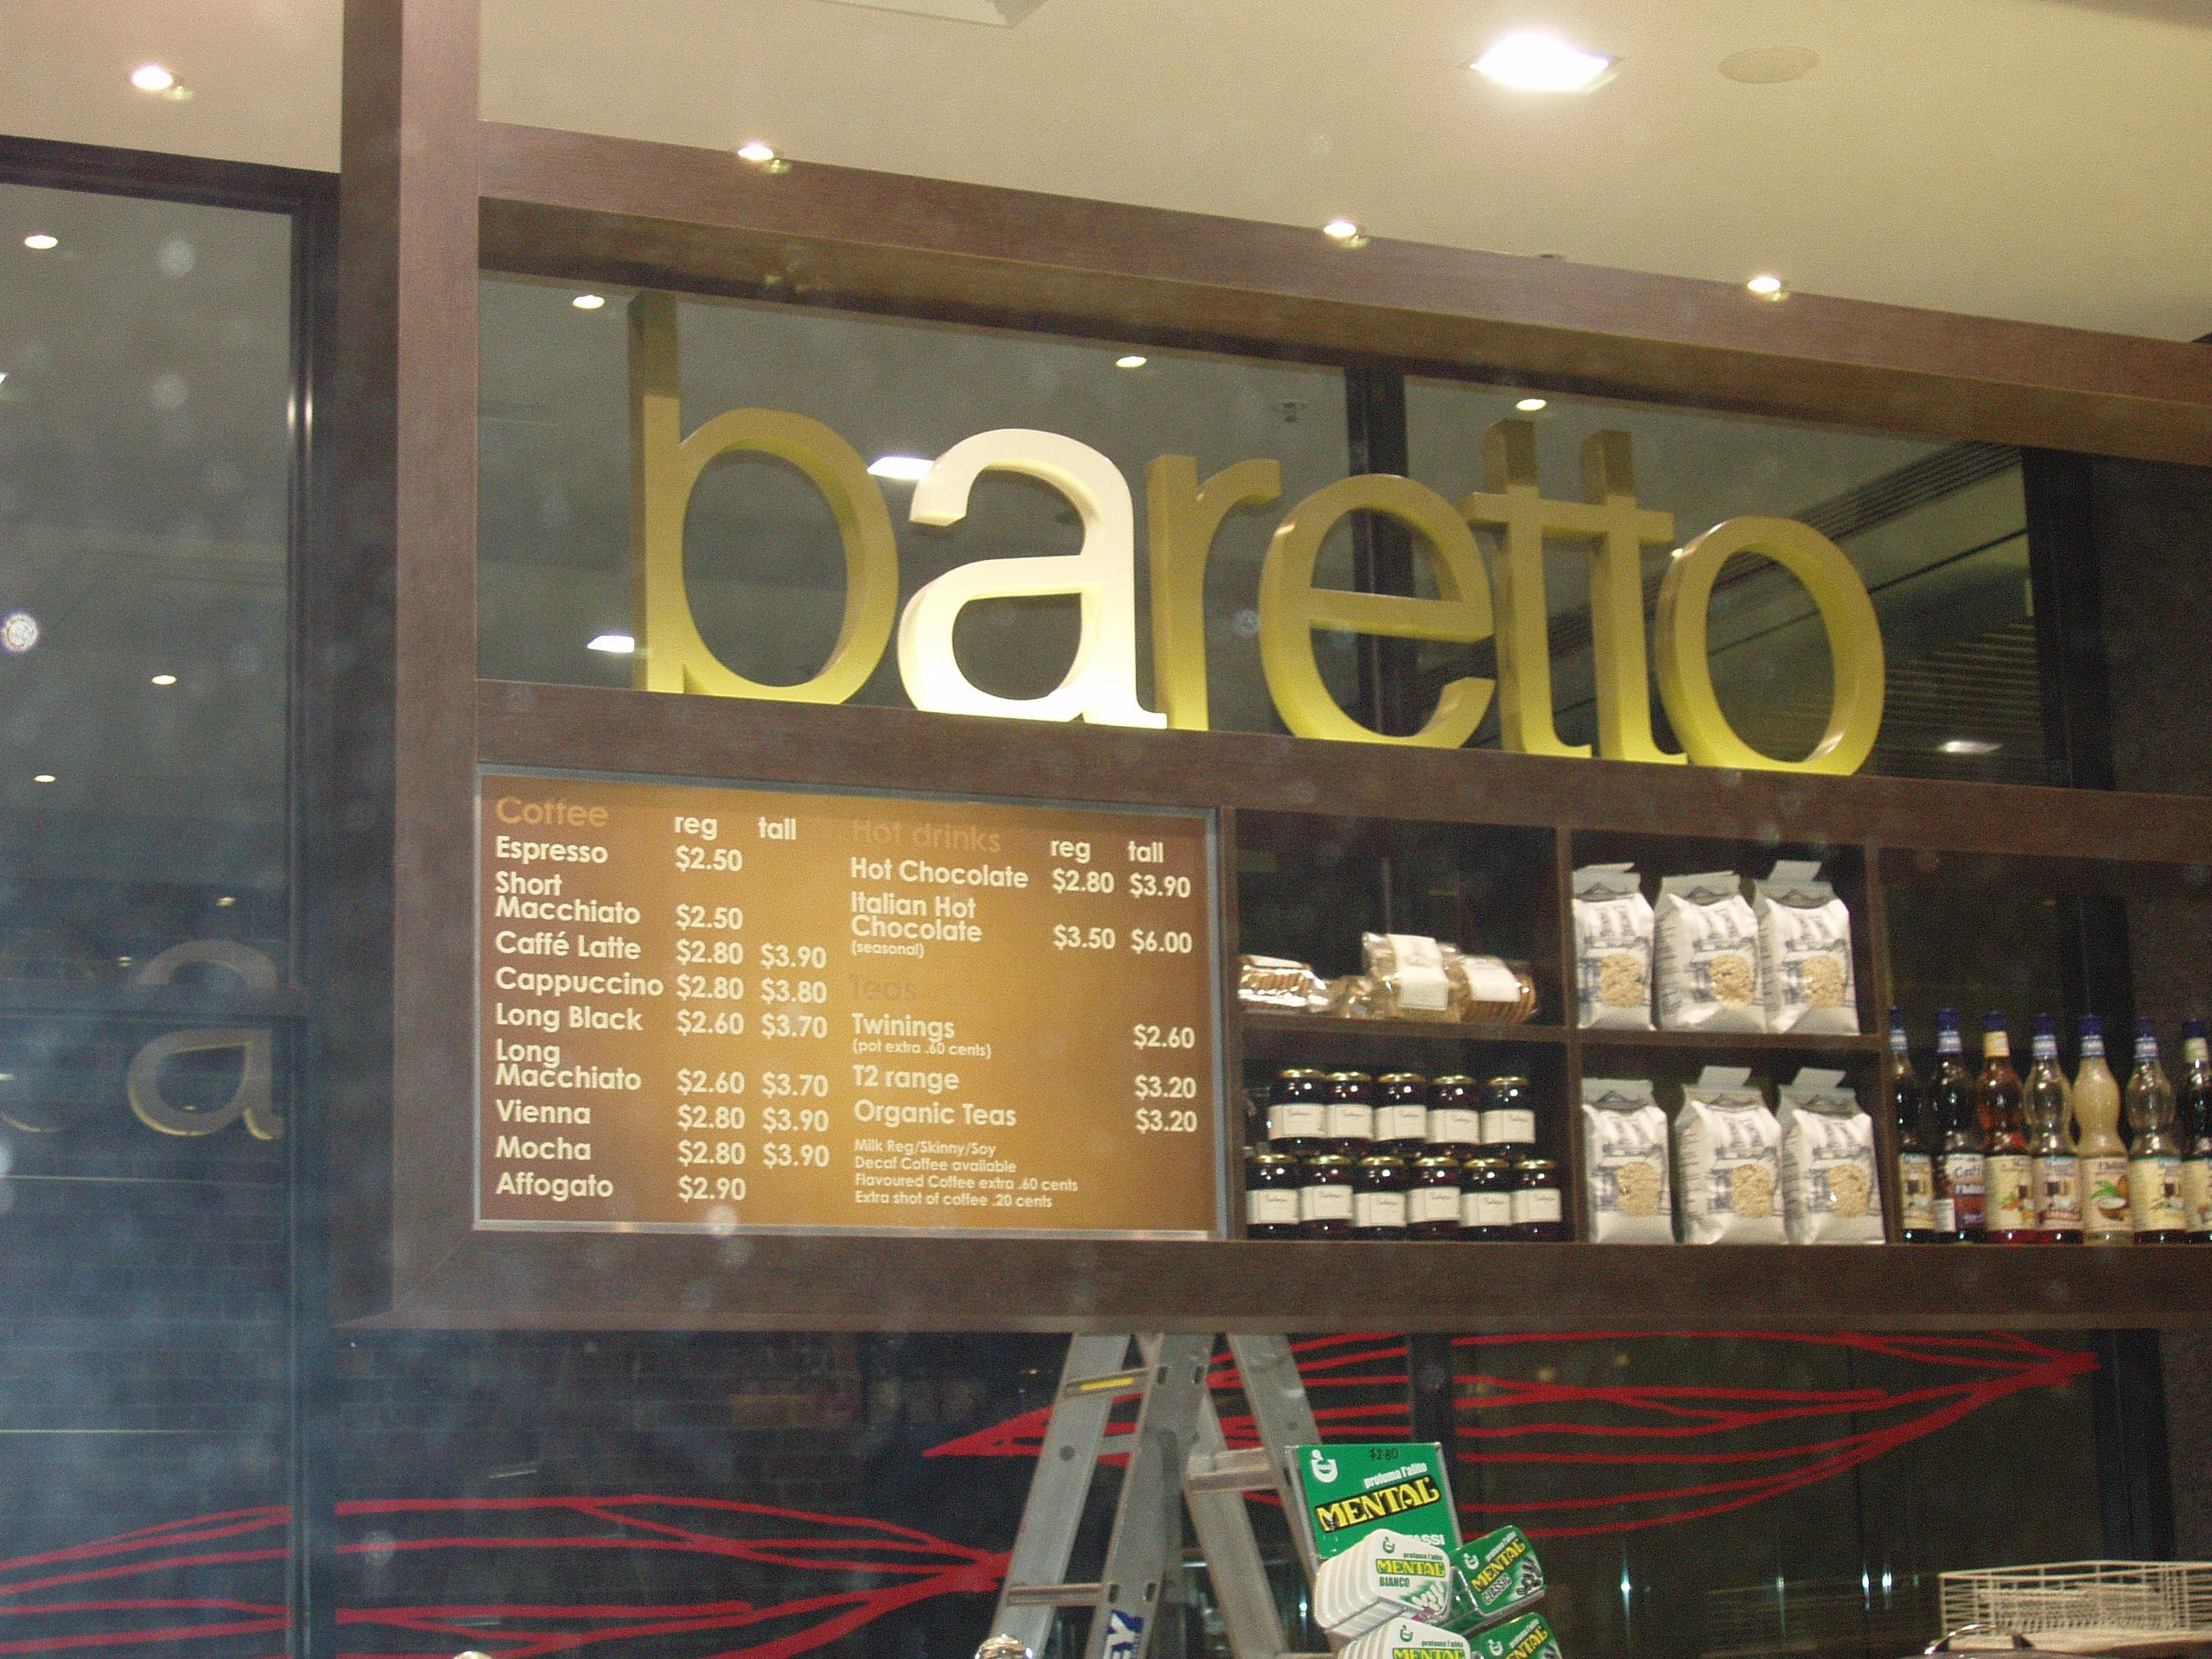 baretto shop signage melbourne